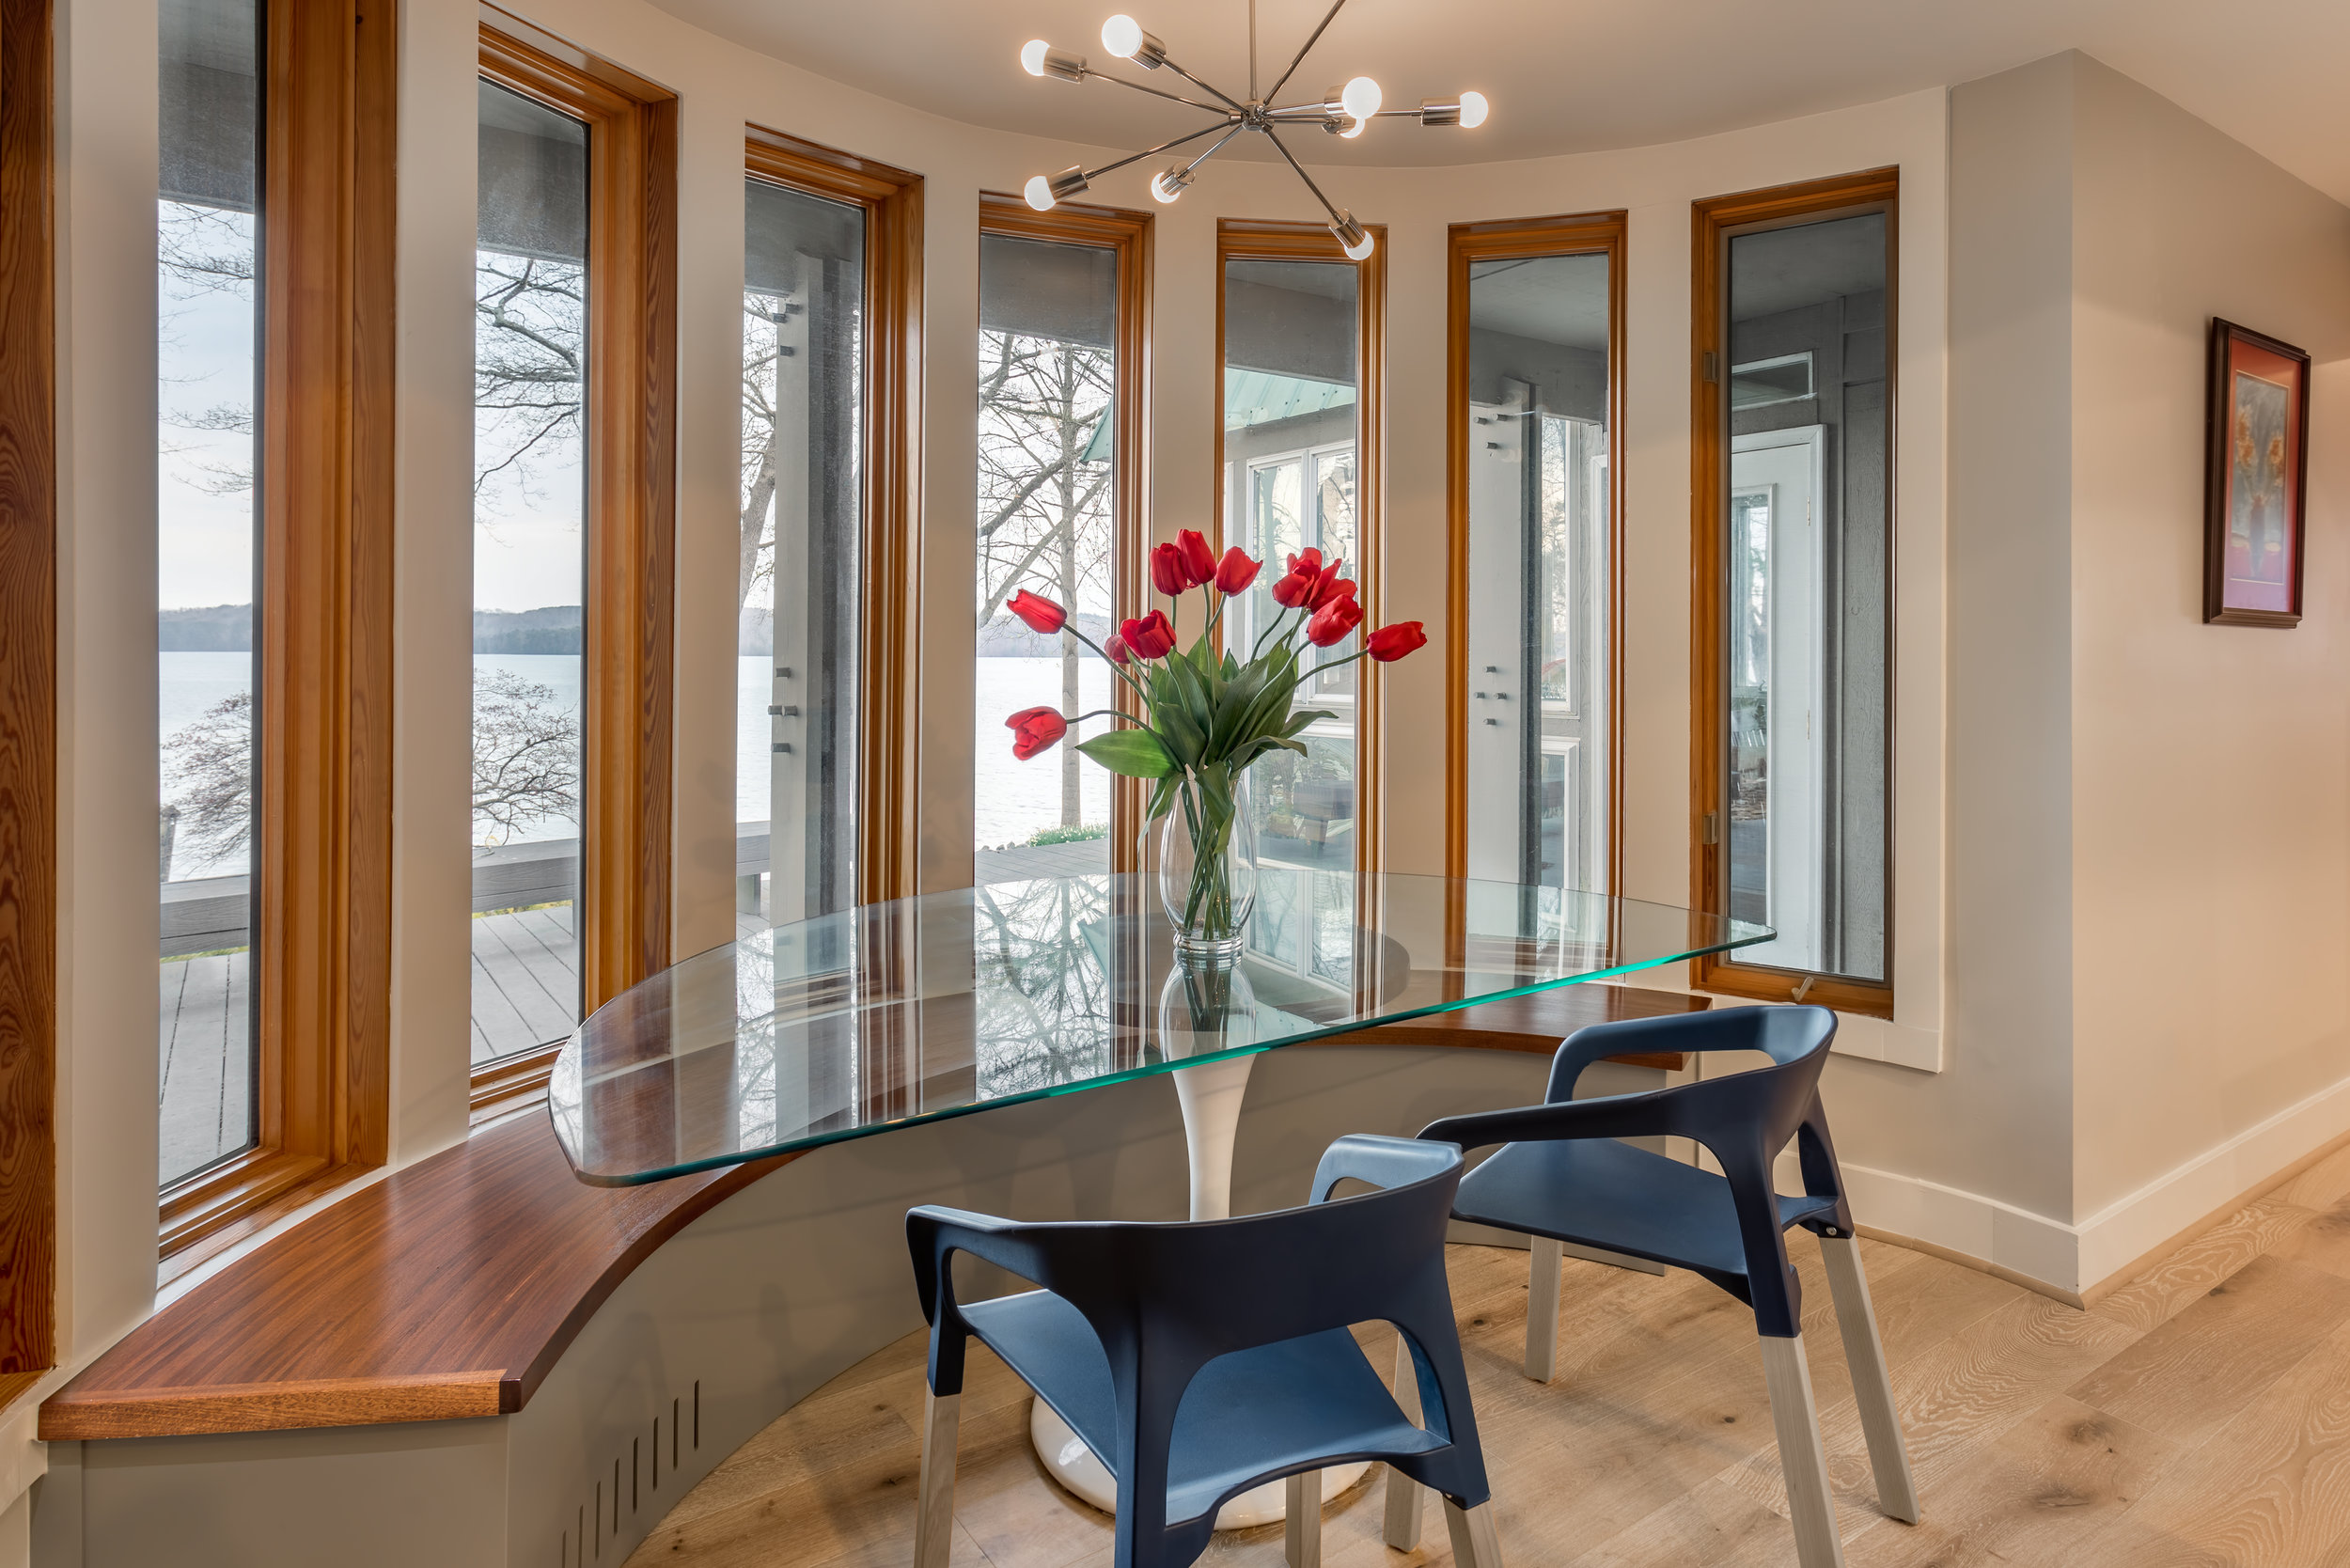 20190416 Breakfast Nook Cropped.jpg